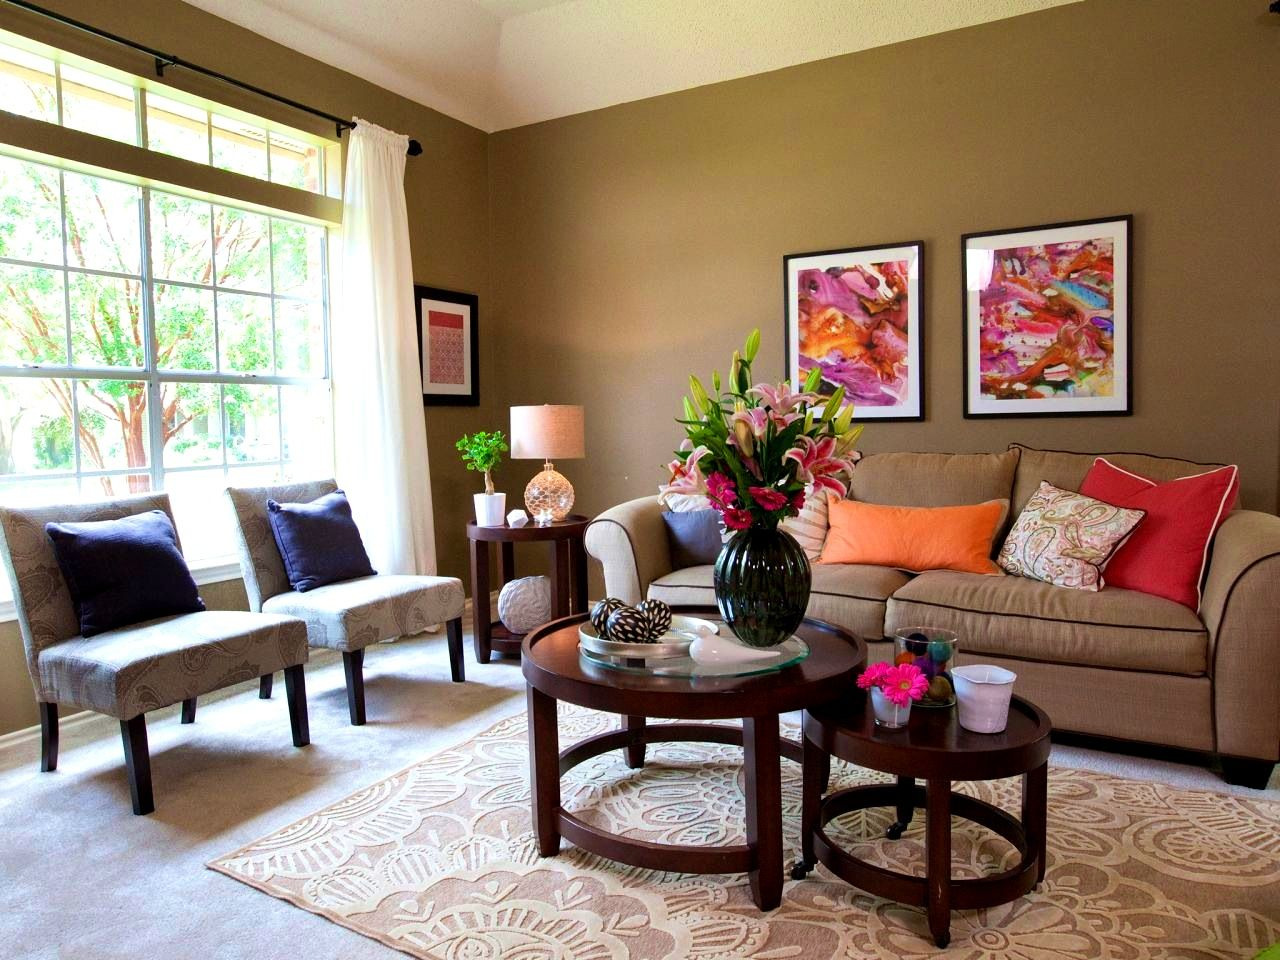 Earth Colors Paint apartments:splendid earth tone living room green wall paint and